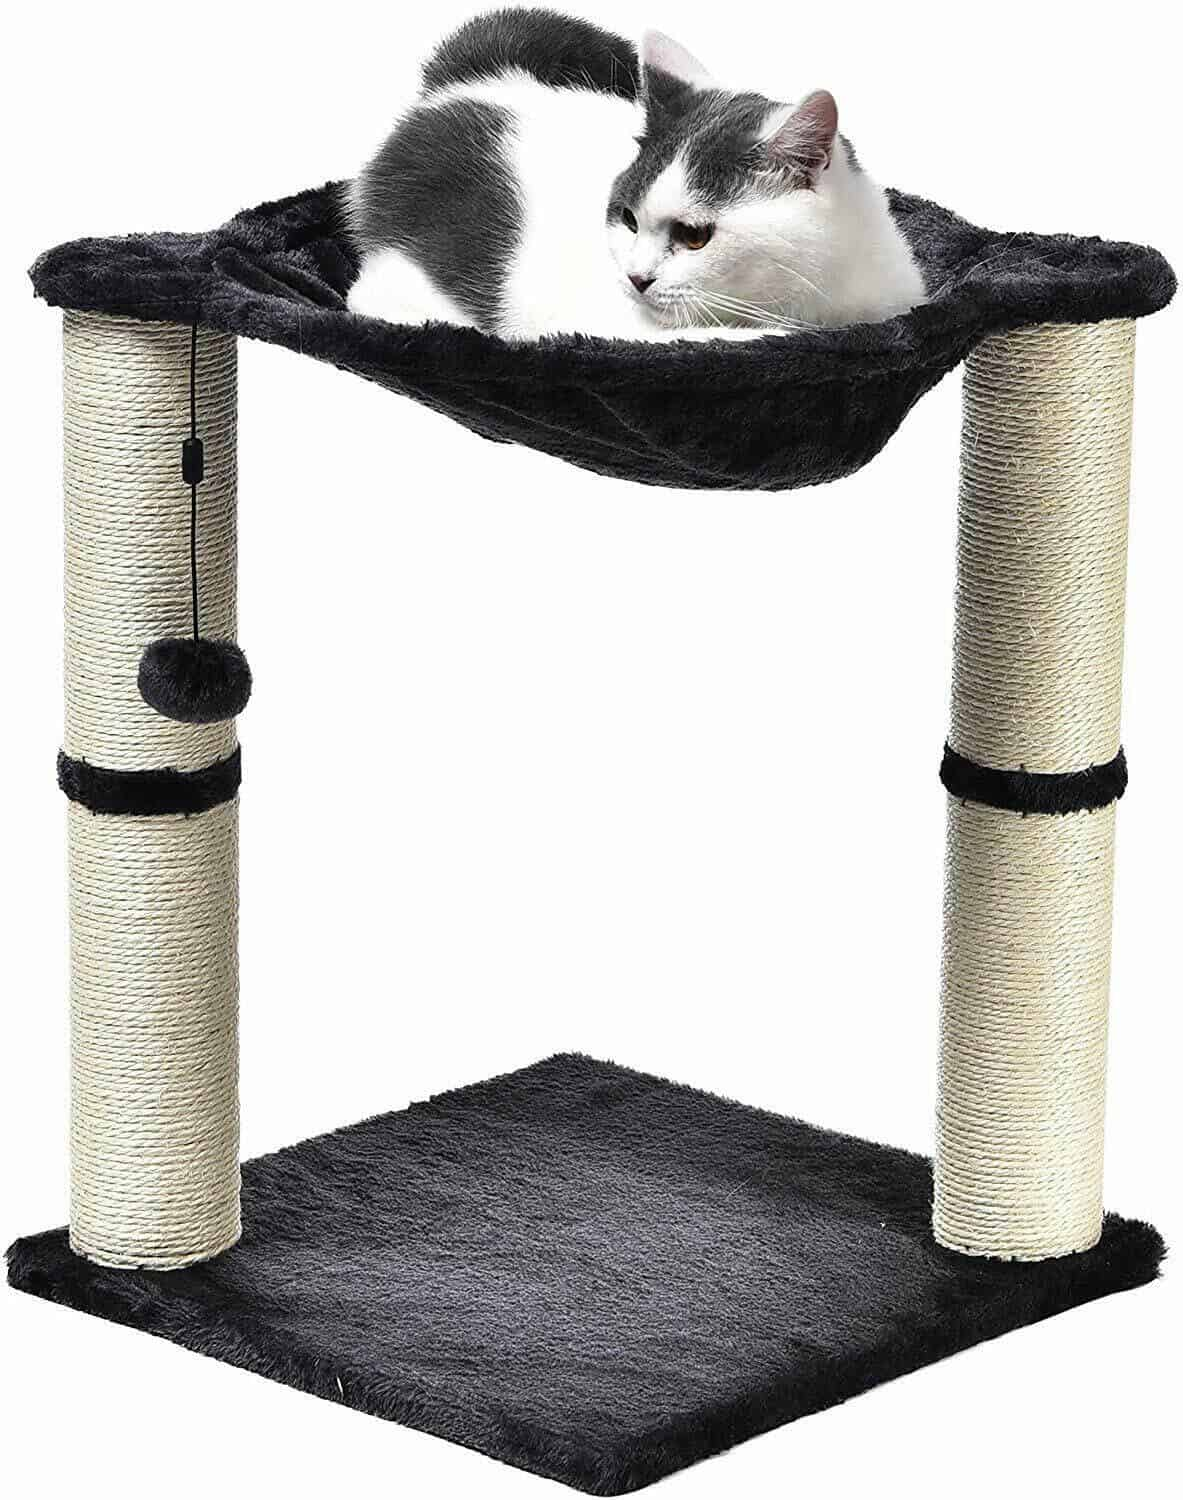 AmazonBasics-Cat-Scratching-Post-and-Hammock-Runner-Up